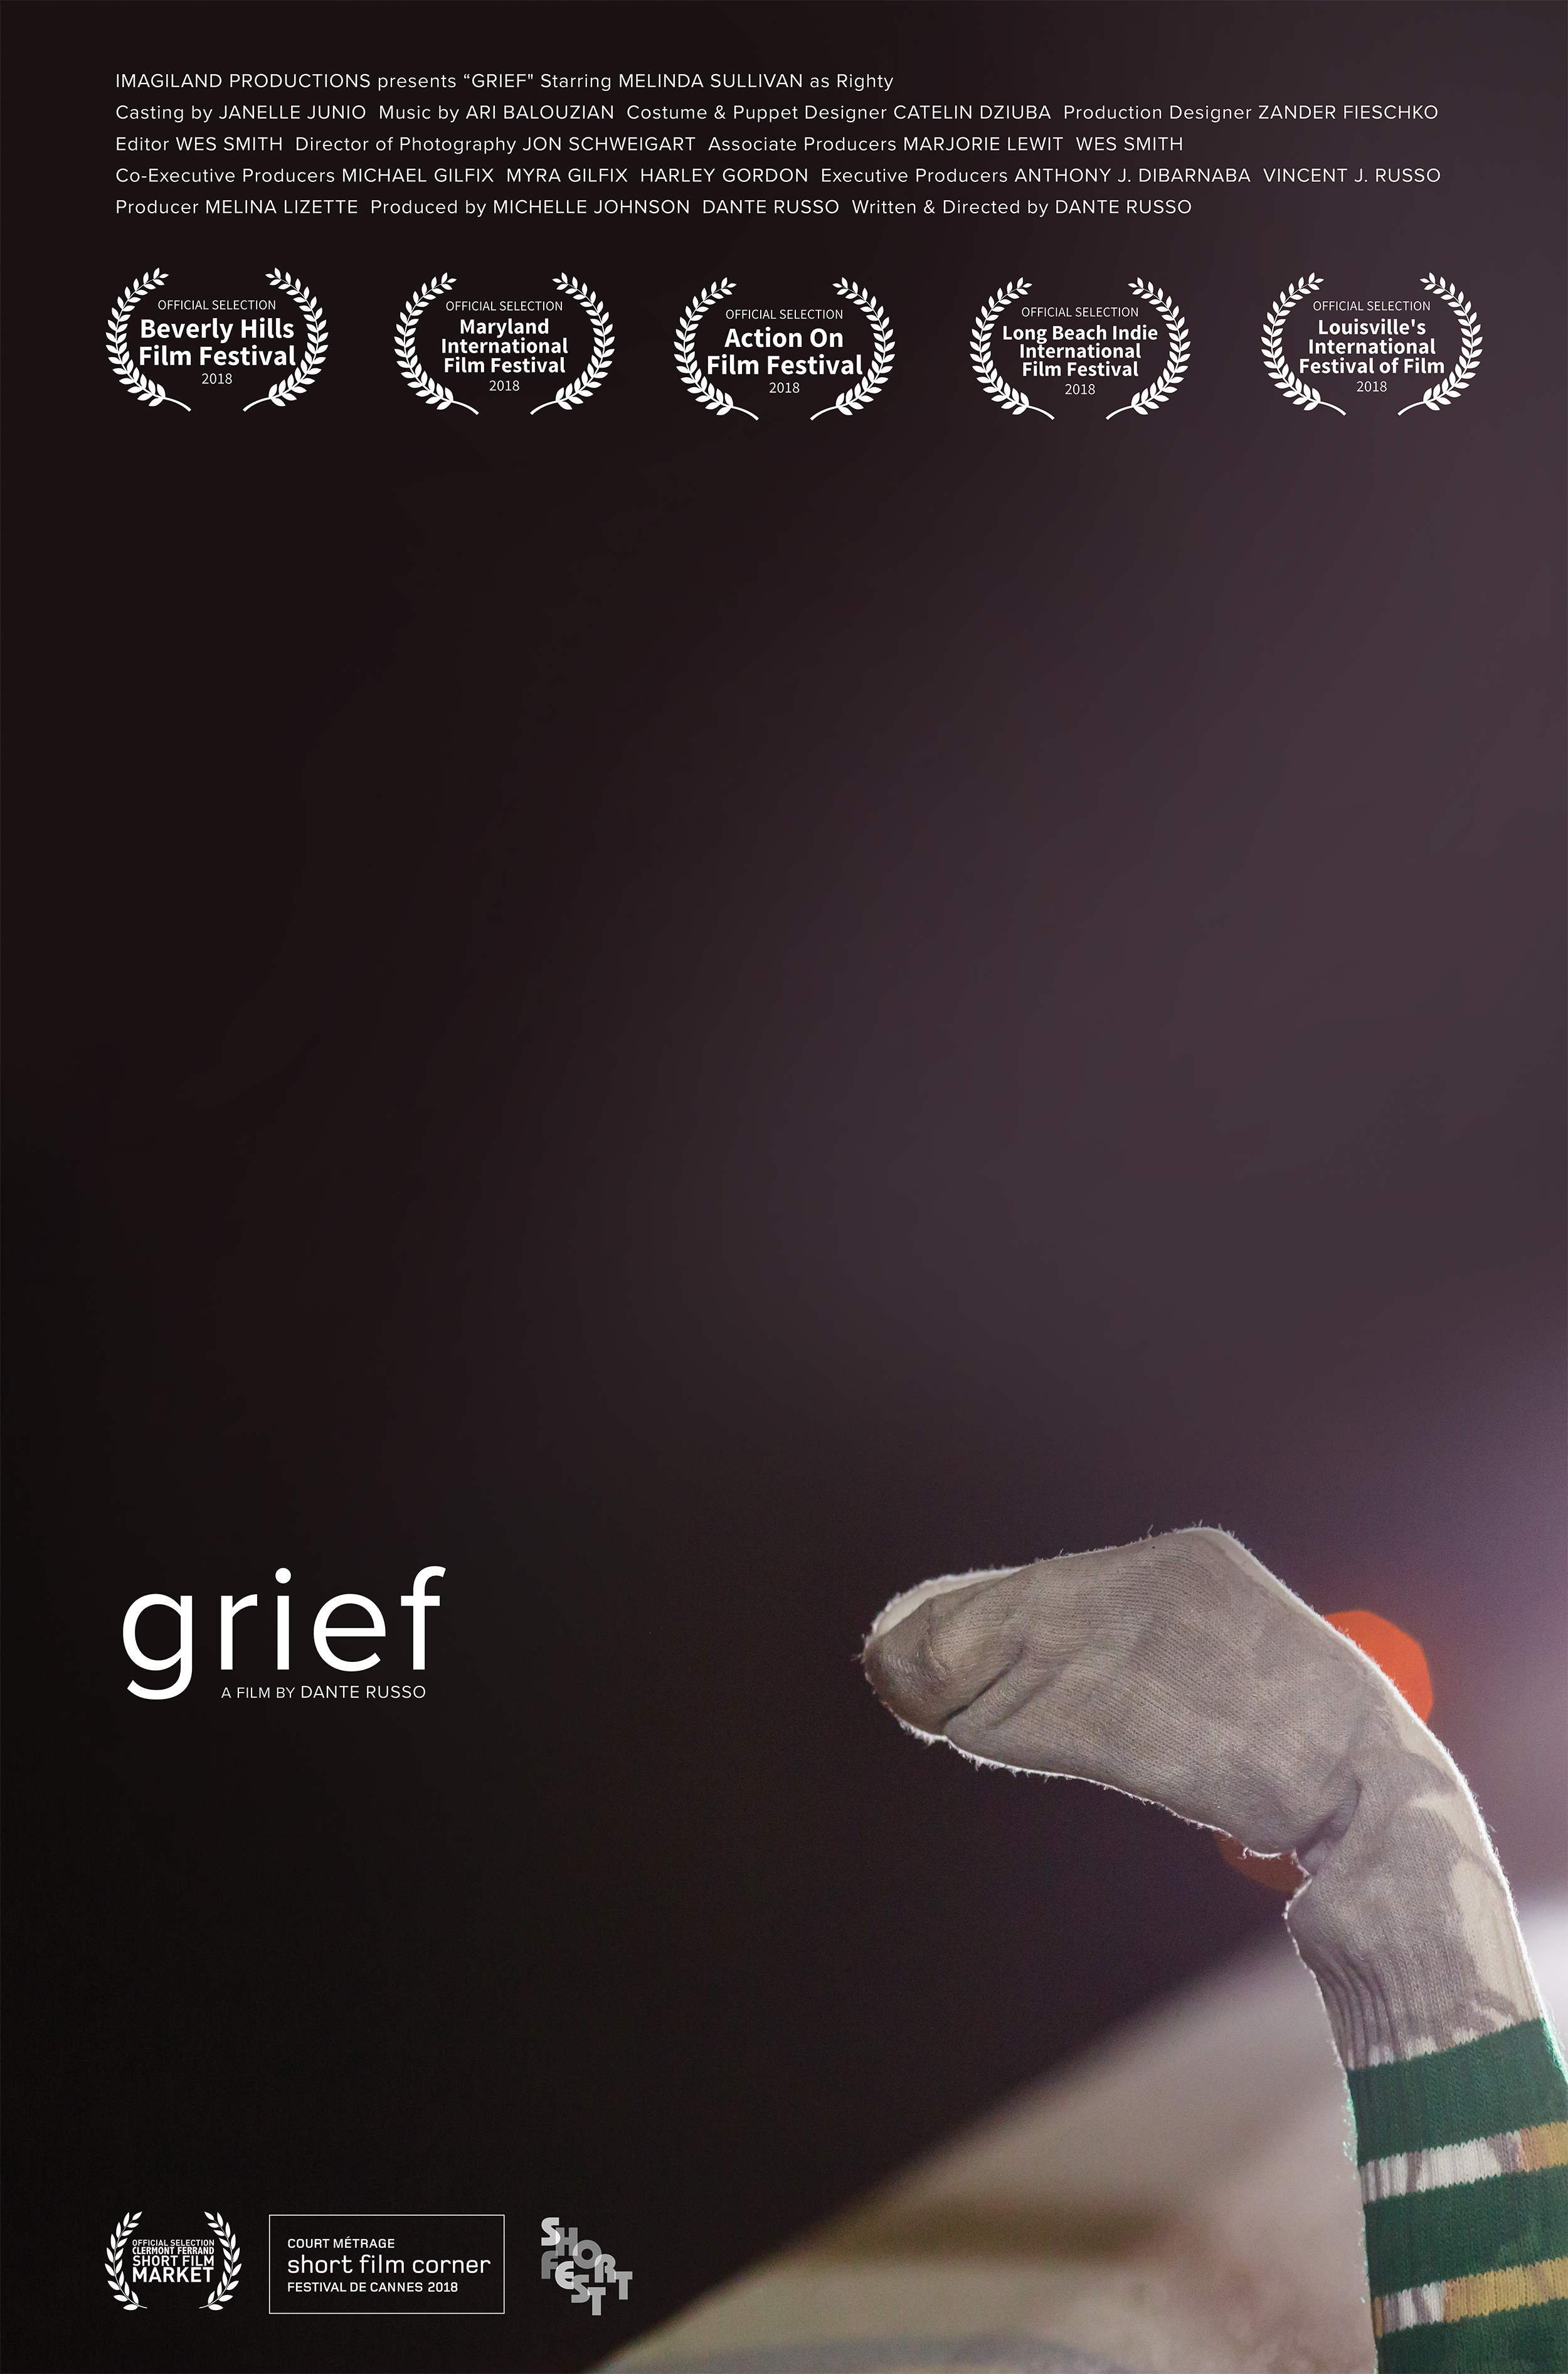 GRIEF_POSTER_100118_small.png